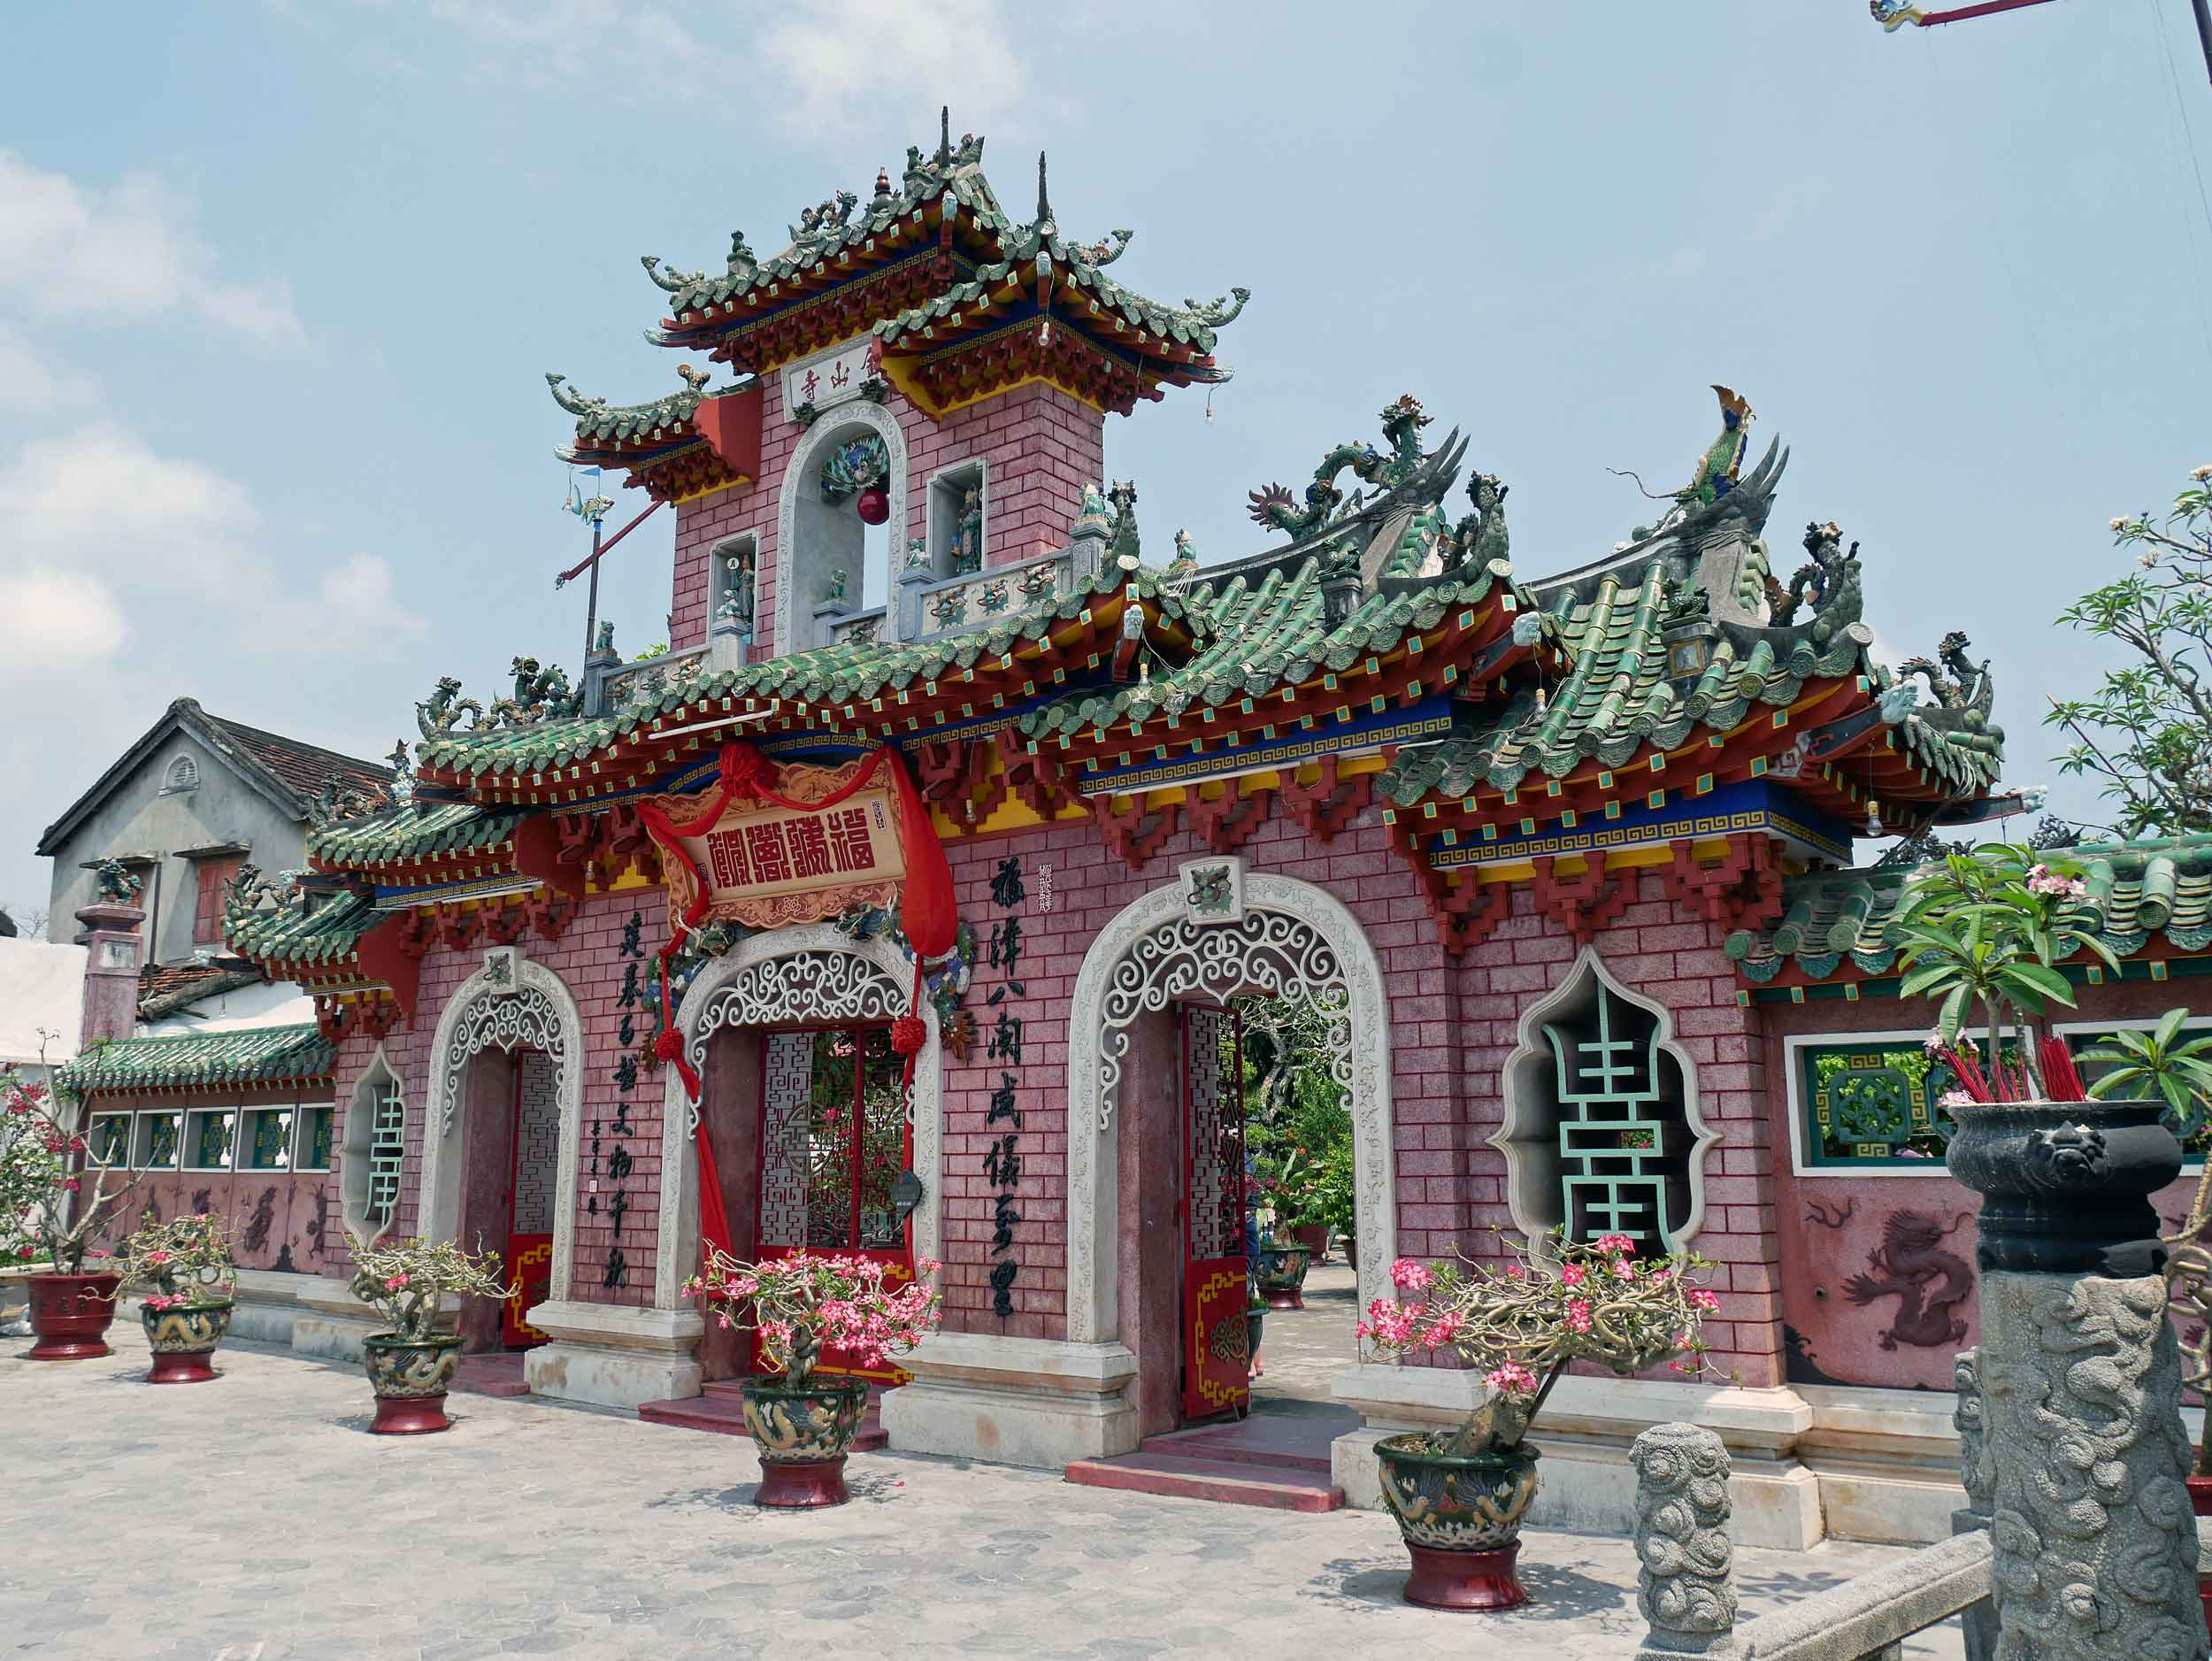 The grand Phuc Kien Assembly Hall was built of Chinese architecure in the late 1600s.